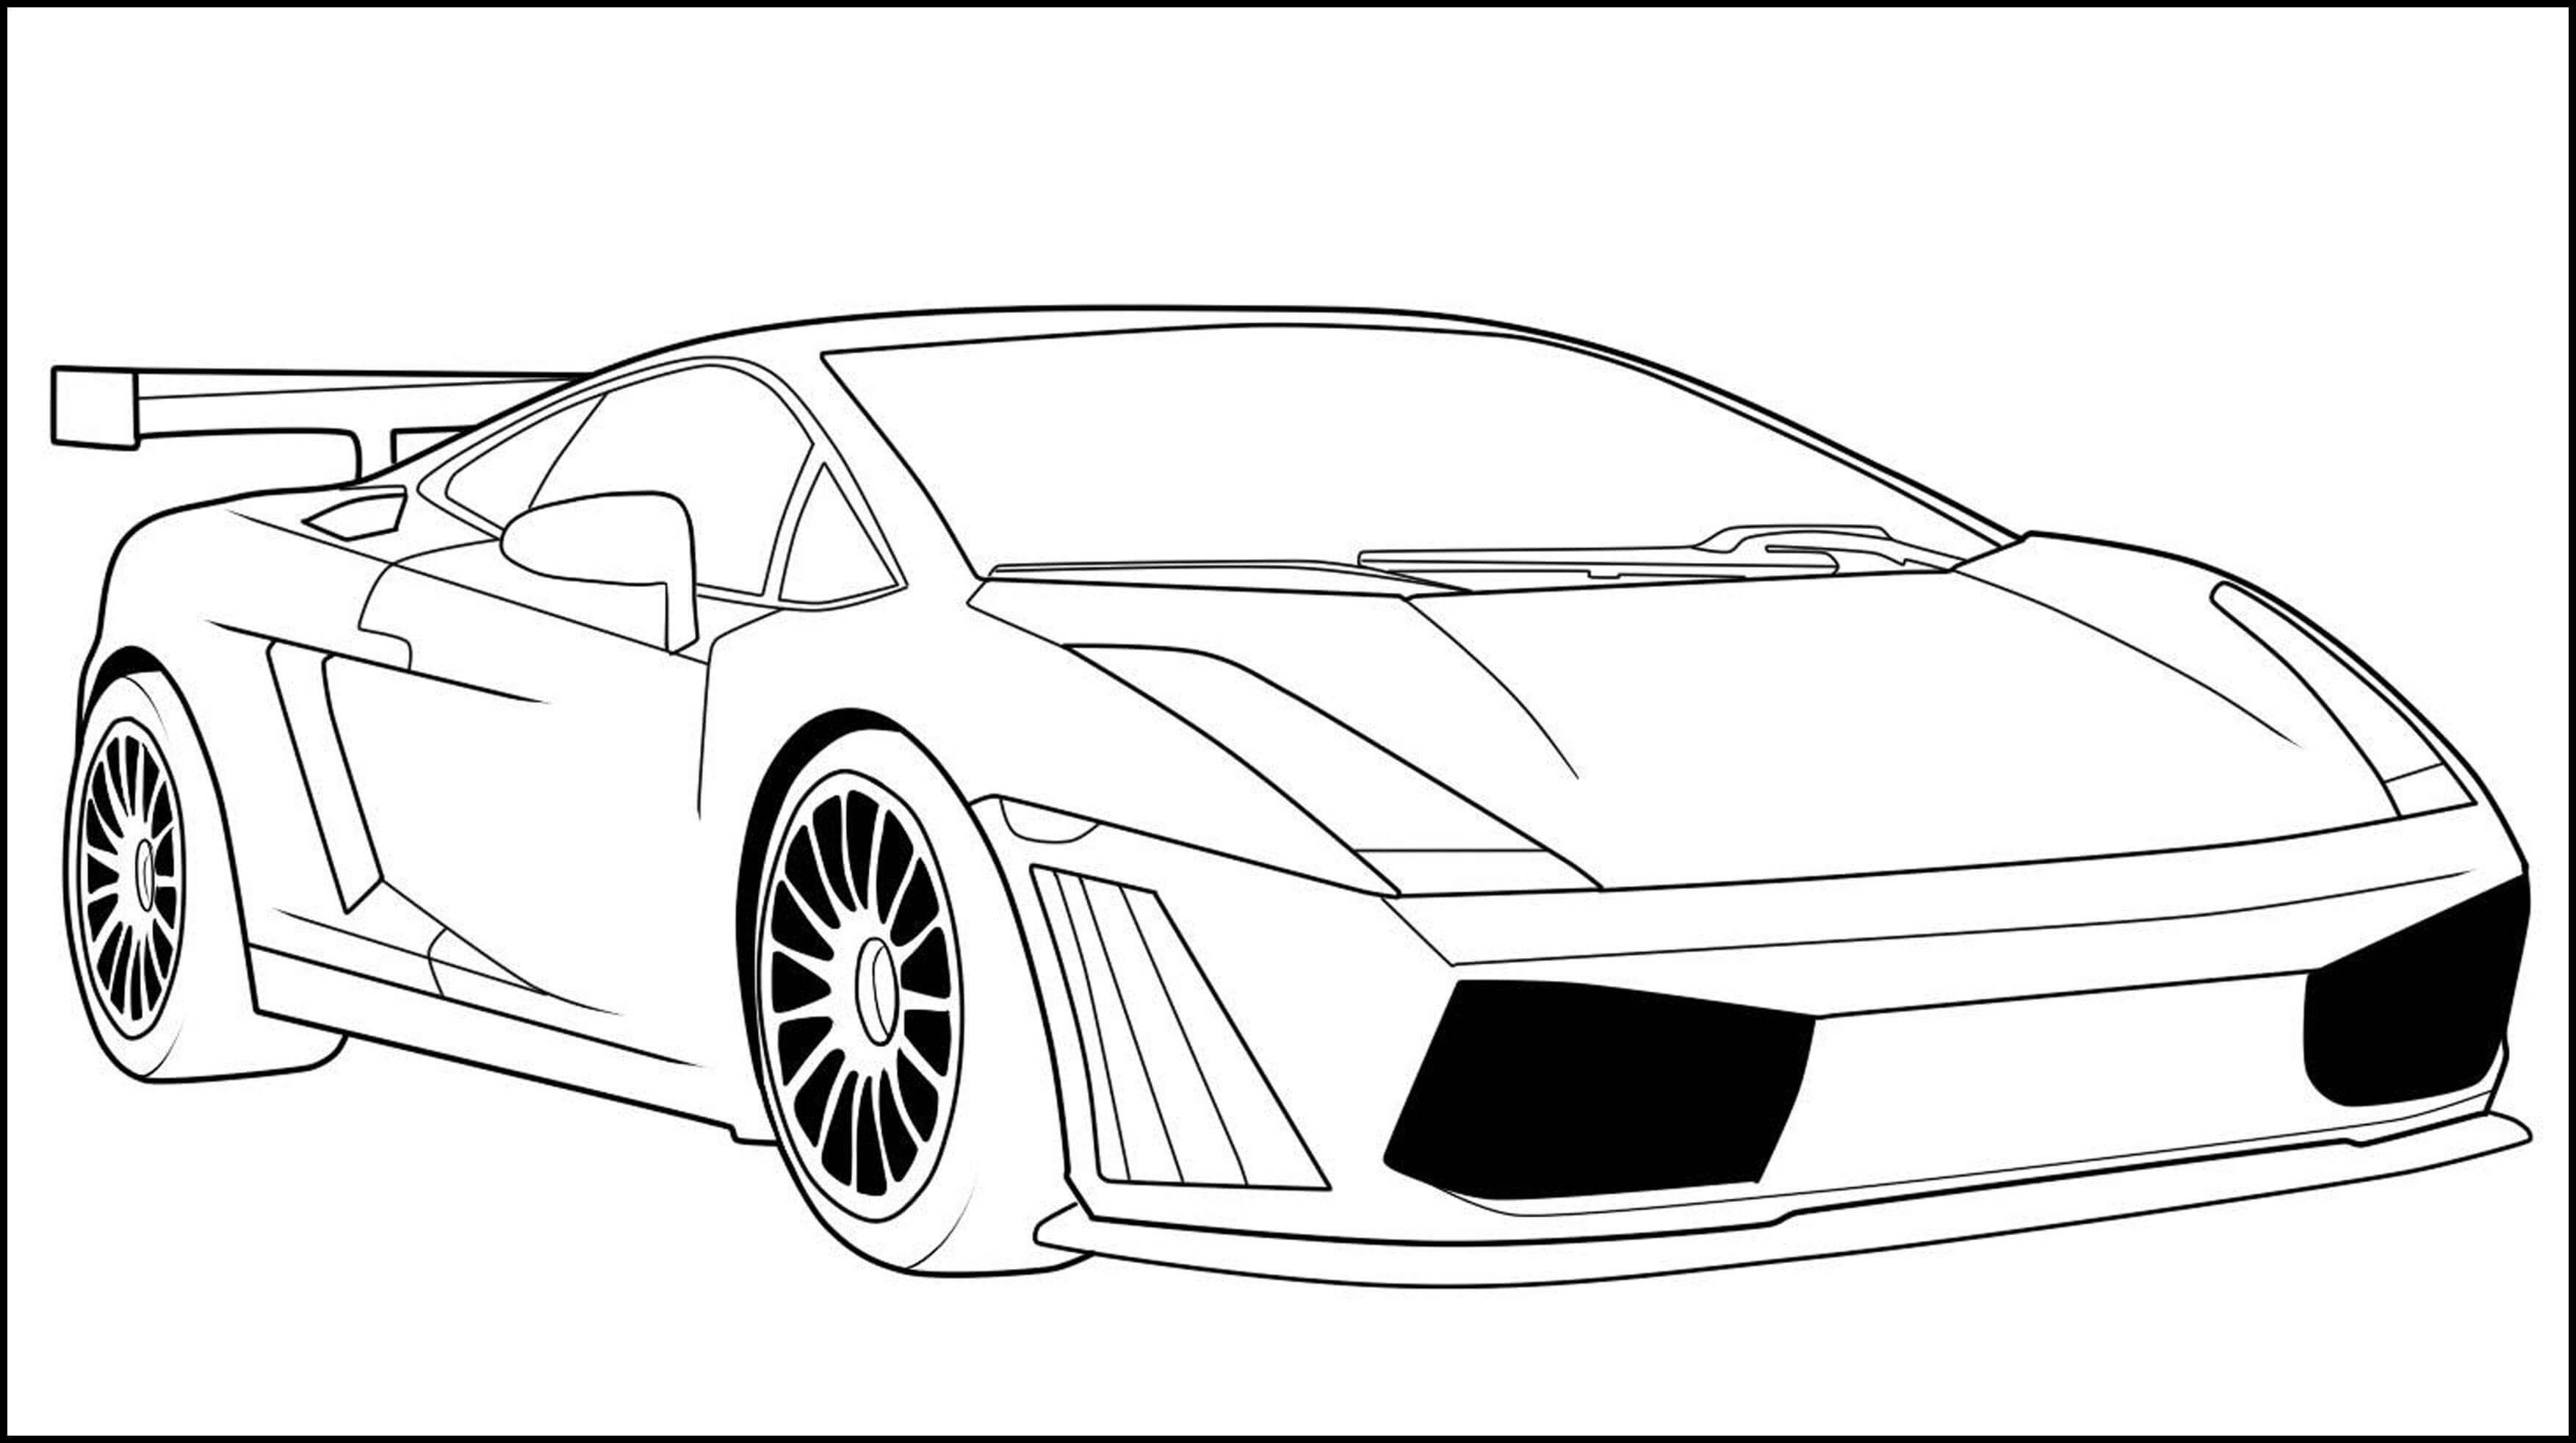 cool car colouring pages cool car coloring pages for kids 101 coloring pages colouring cool car